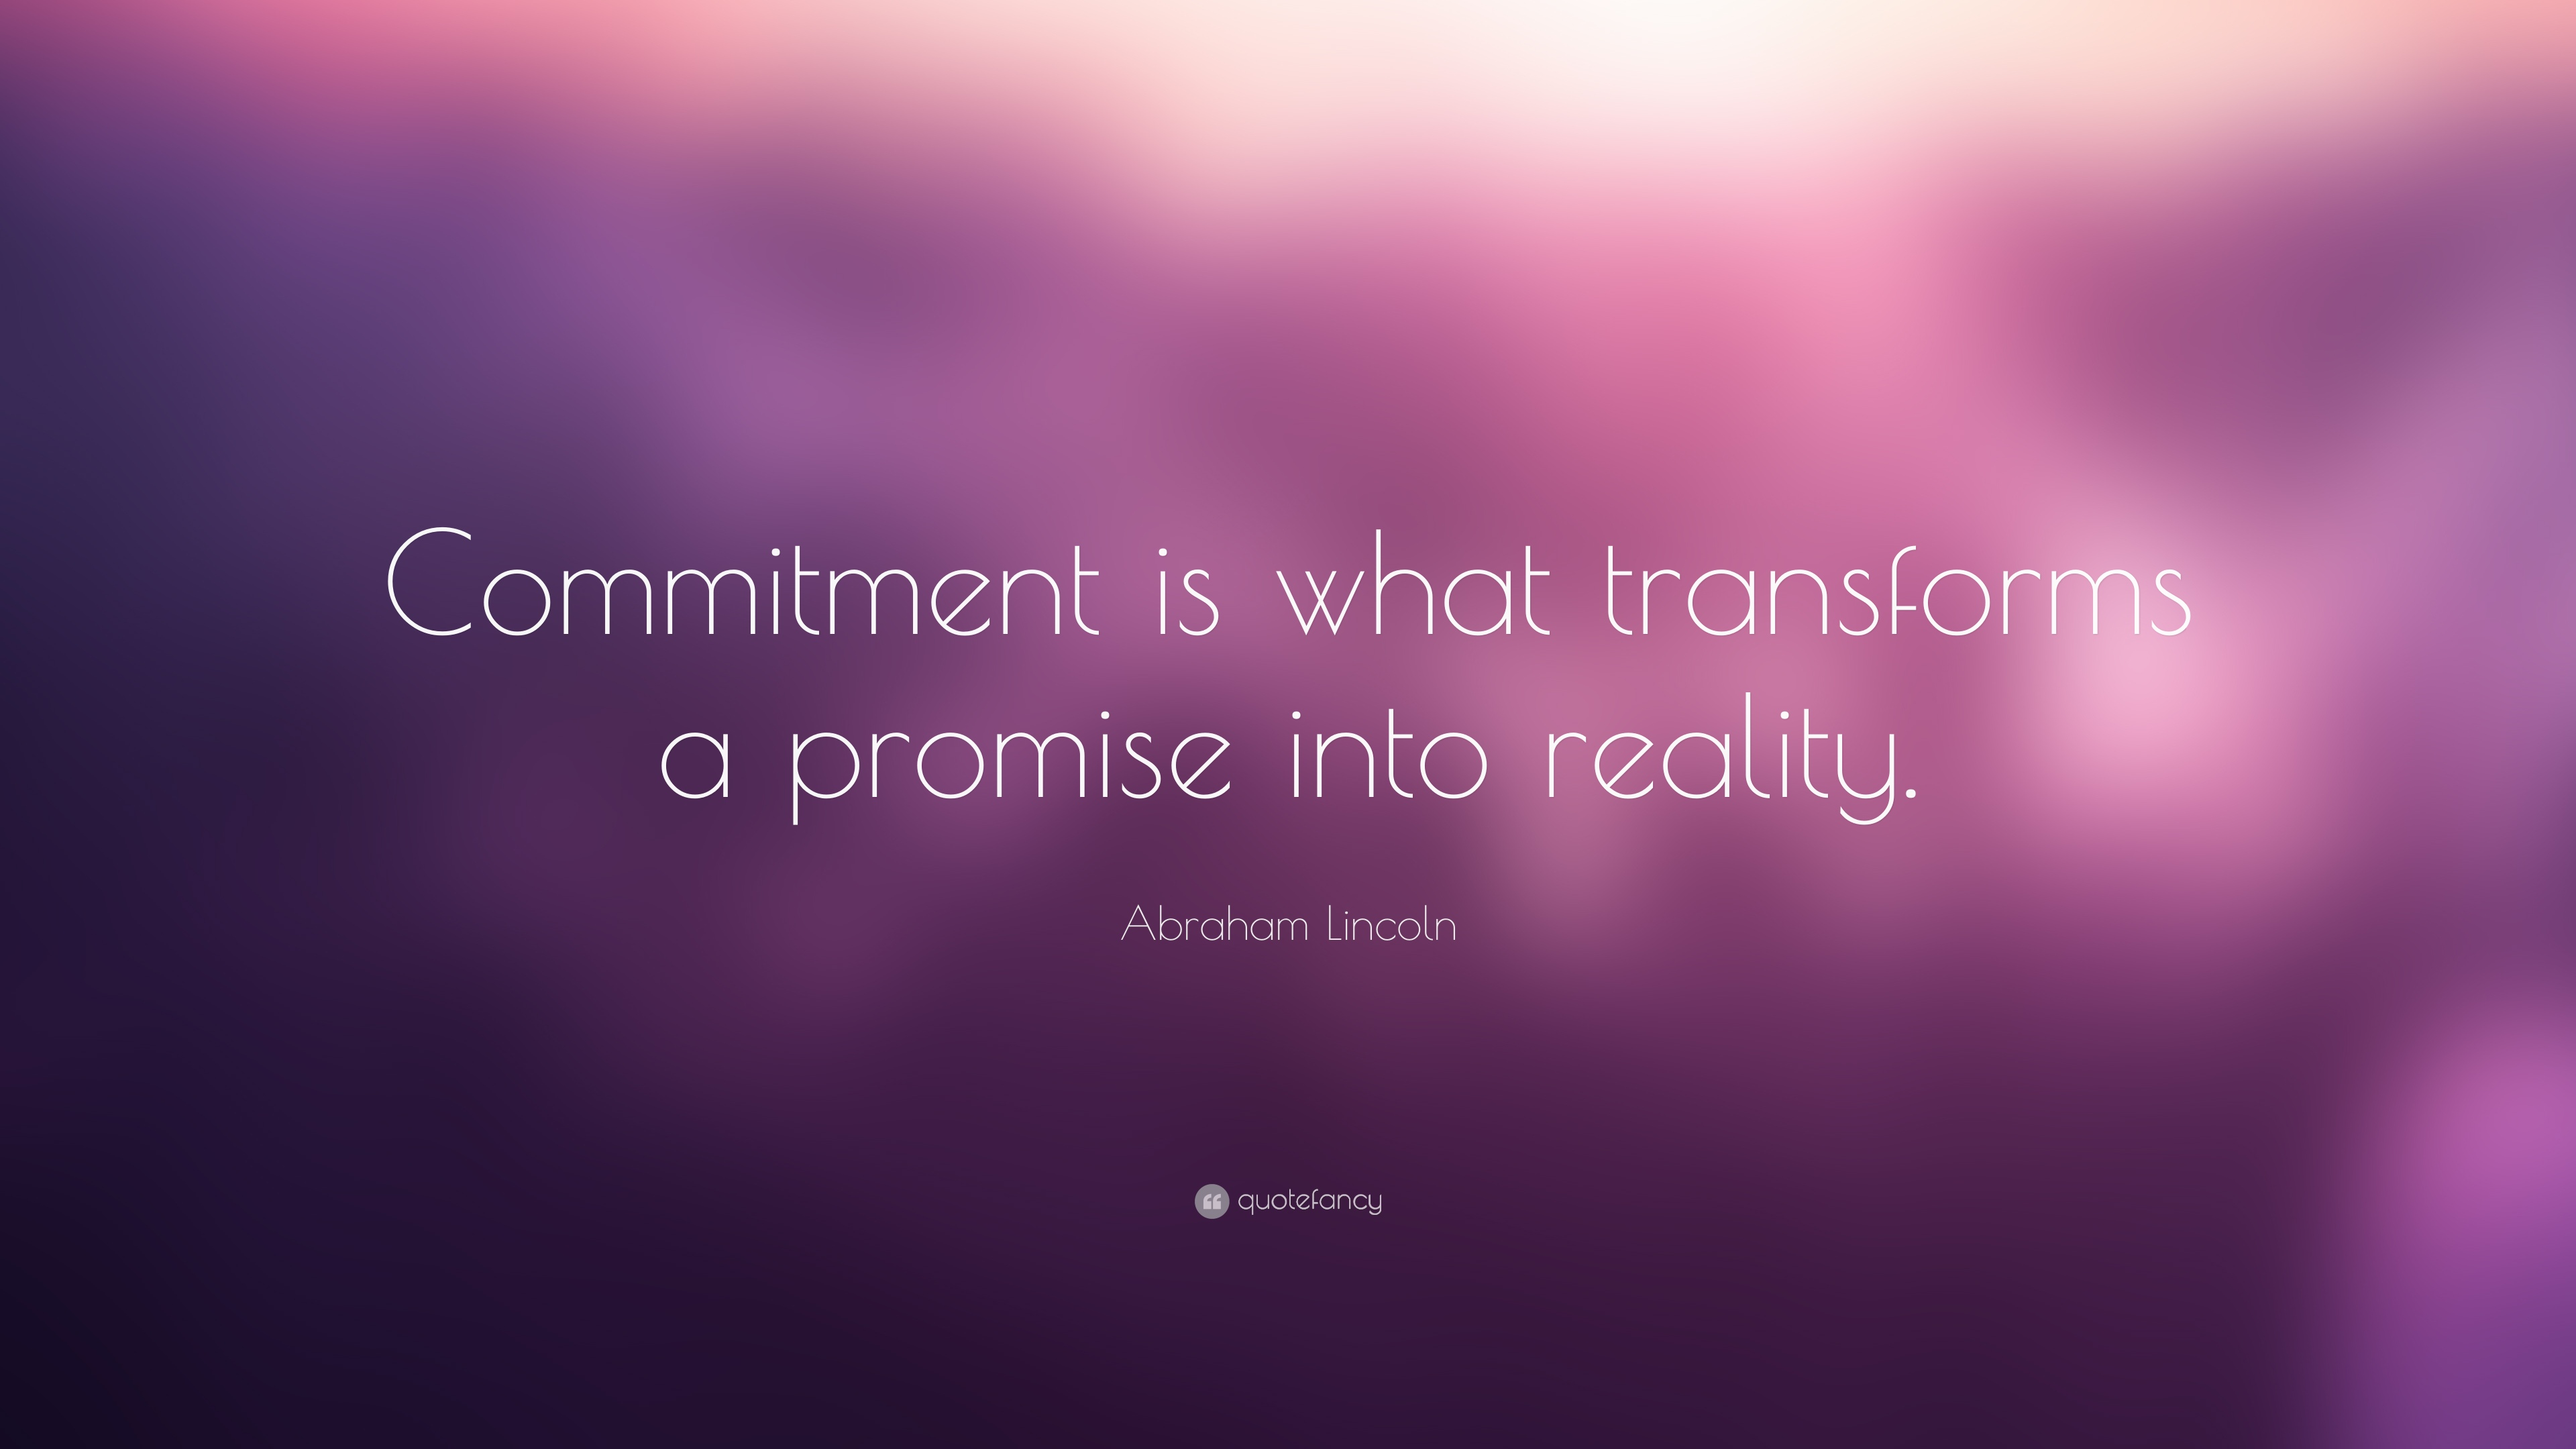 Abraham Lincoln Quote Commitment Is What Transforms A Promise Into Reality 21 Wallpapers